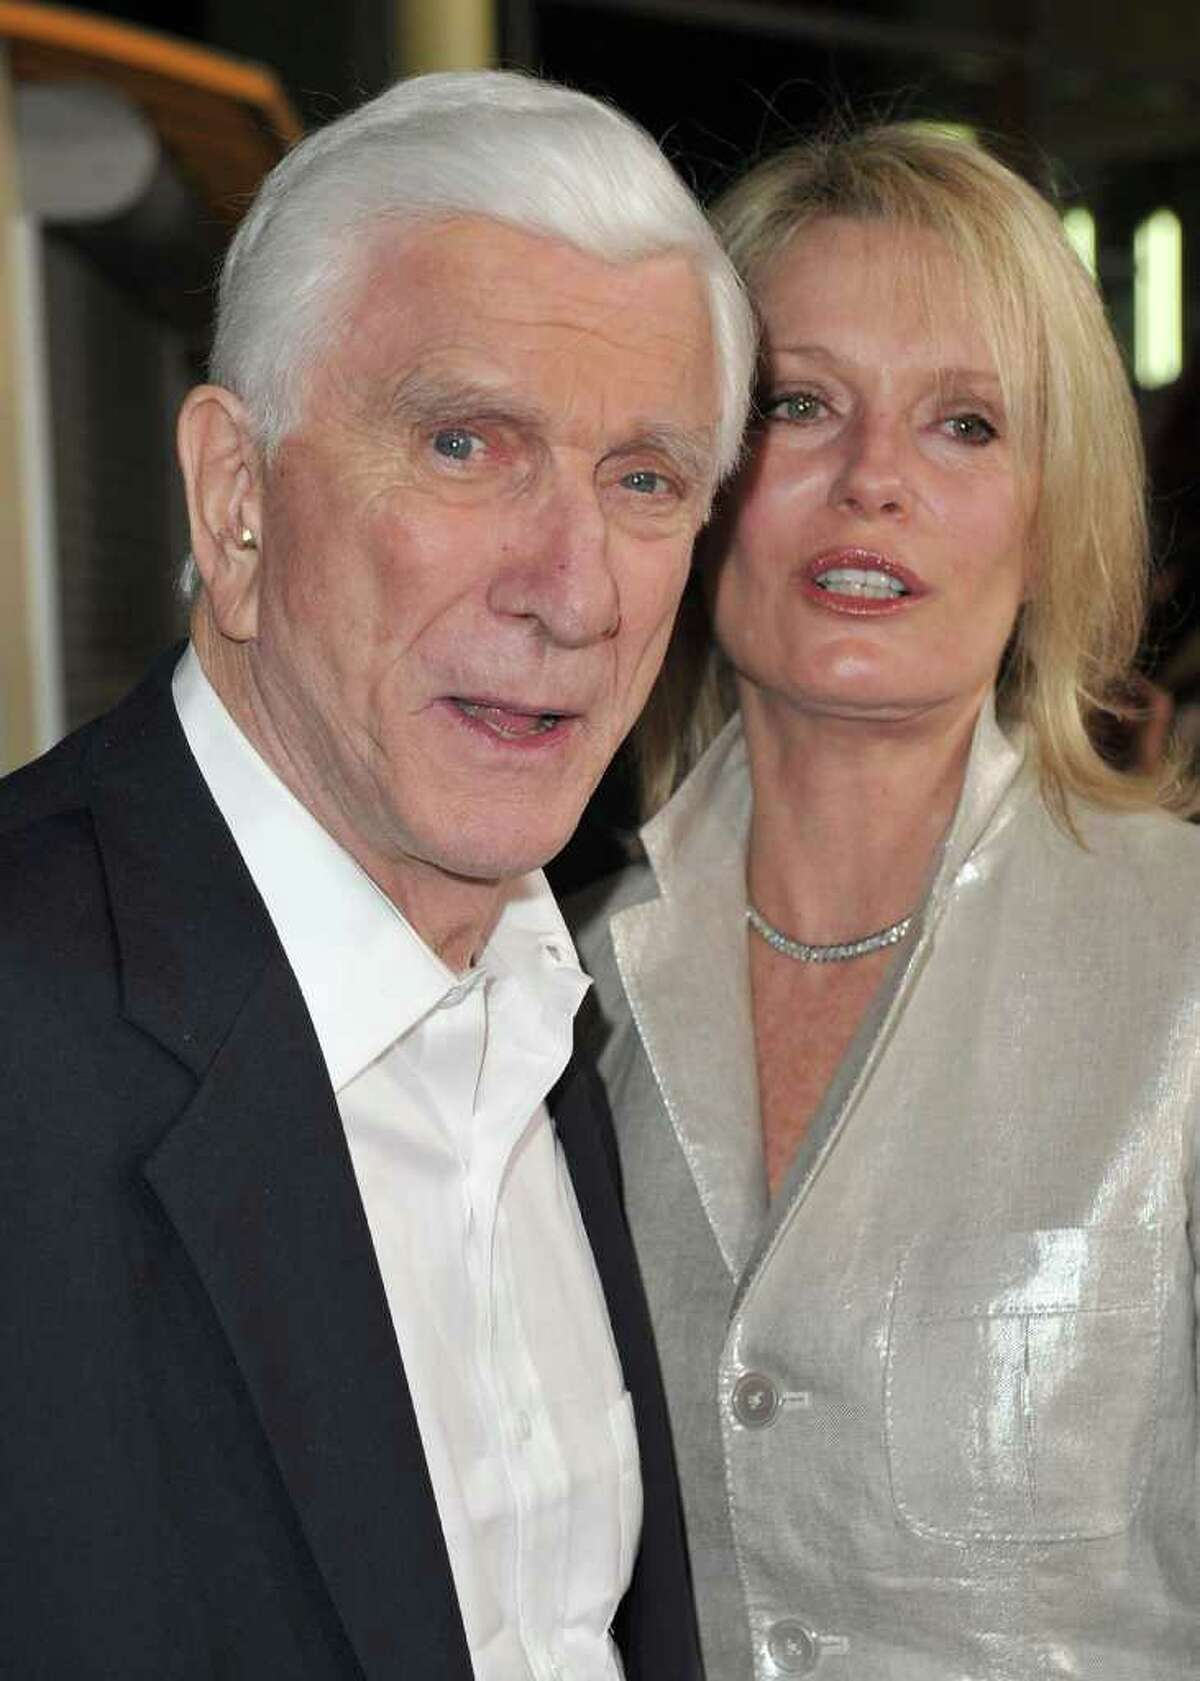 LOS ANGELES, CA - OCTOBER 20: Leslie Nielsen (L) and wife Barbaree Earl Nielsen arrive at the Los Angeles premiere of Anchor Bay Entertainment's